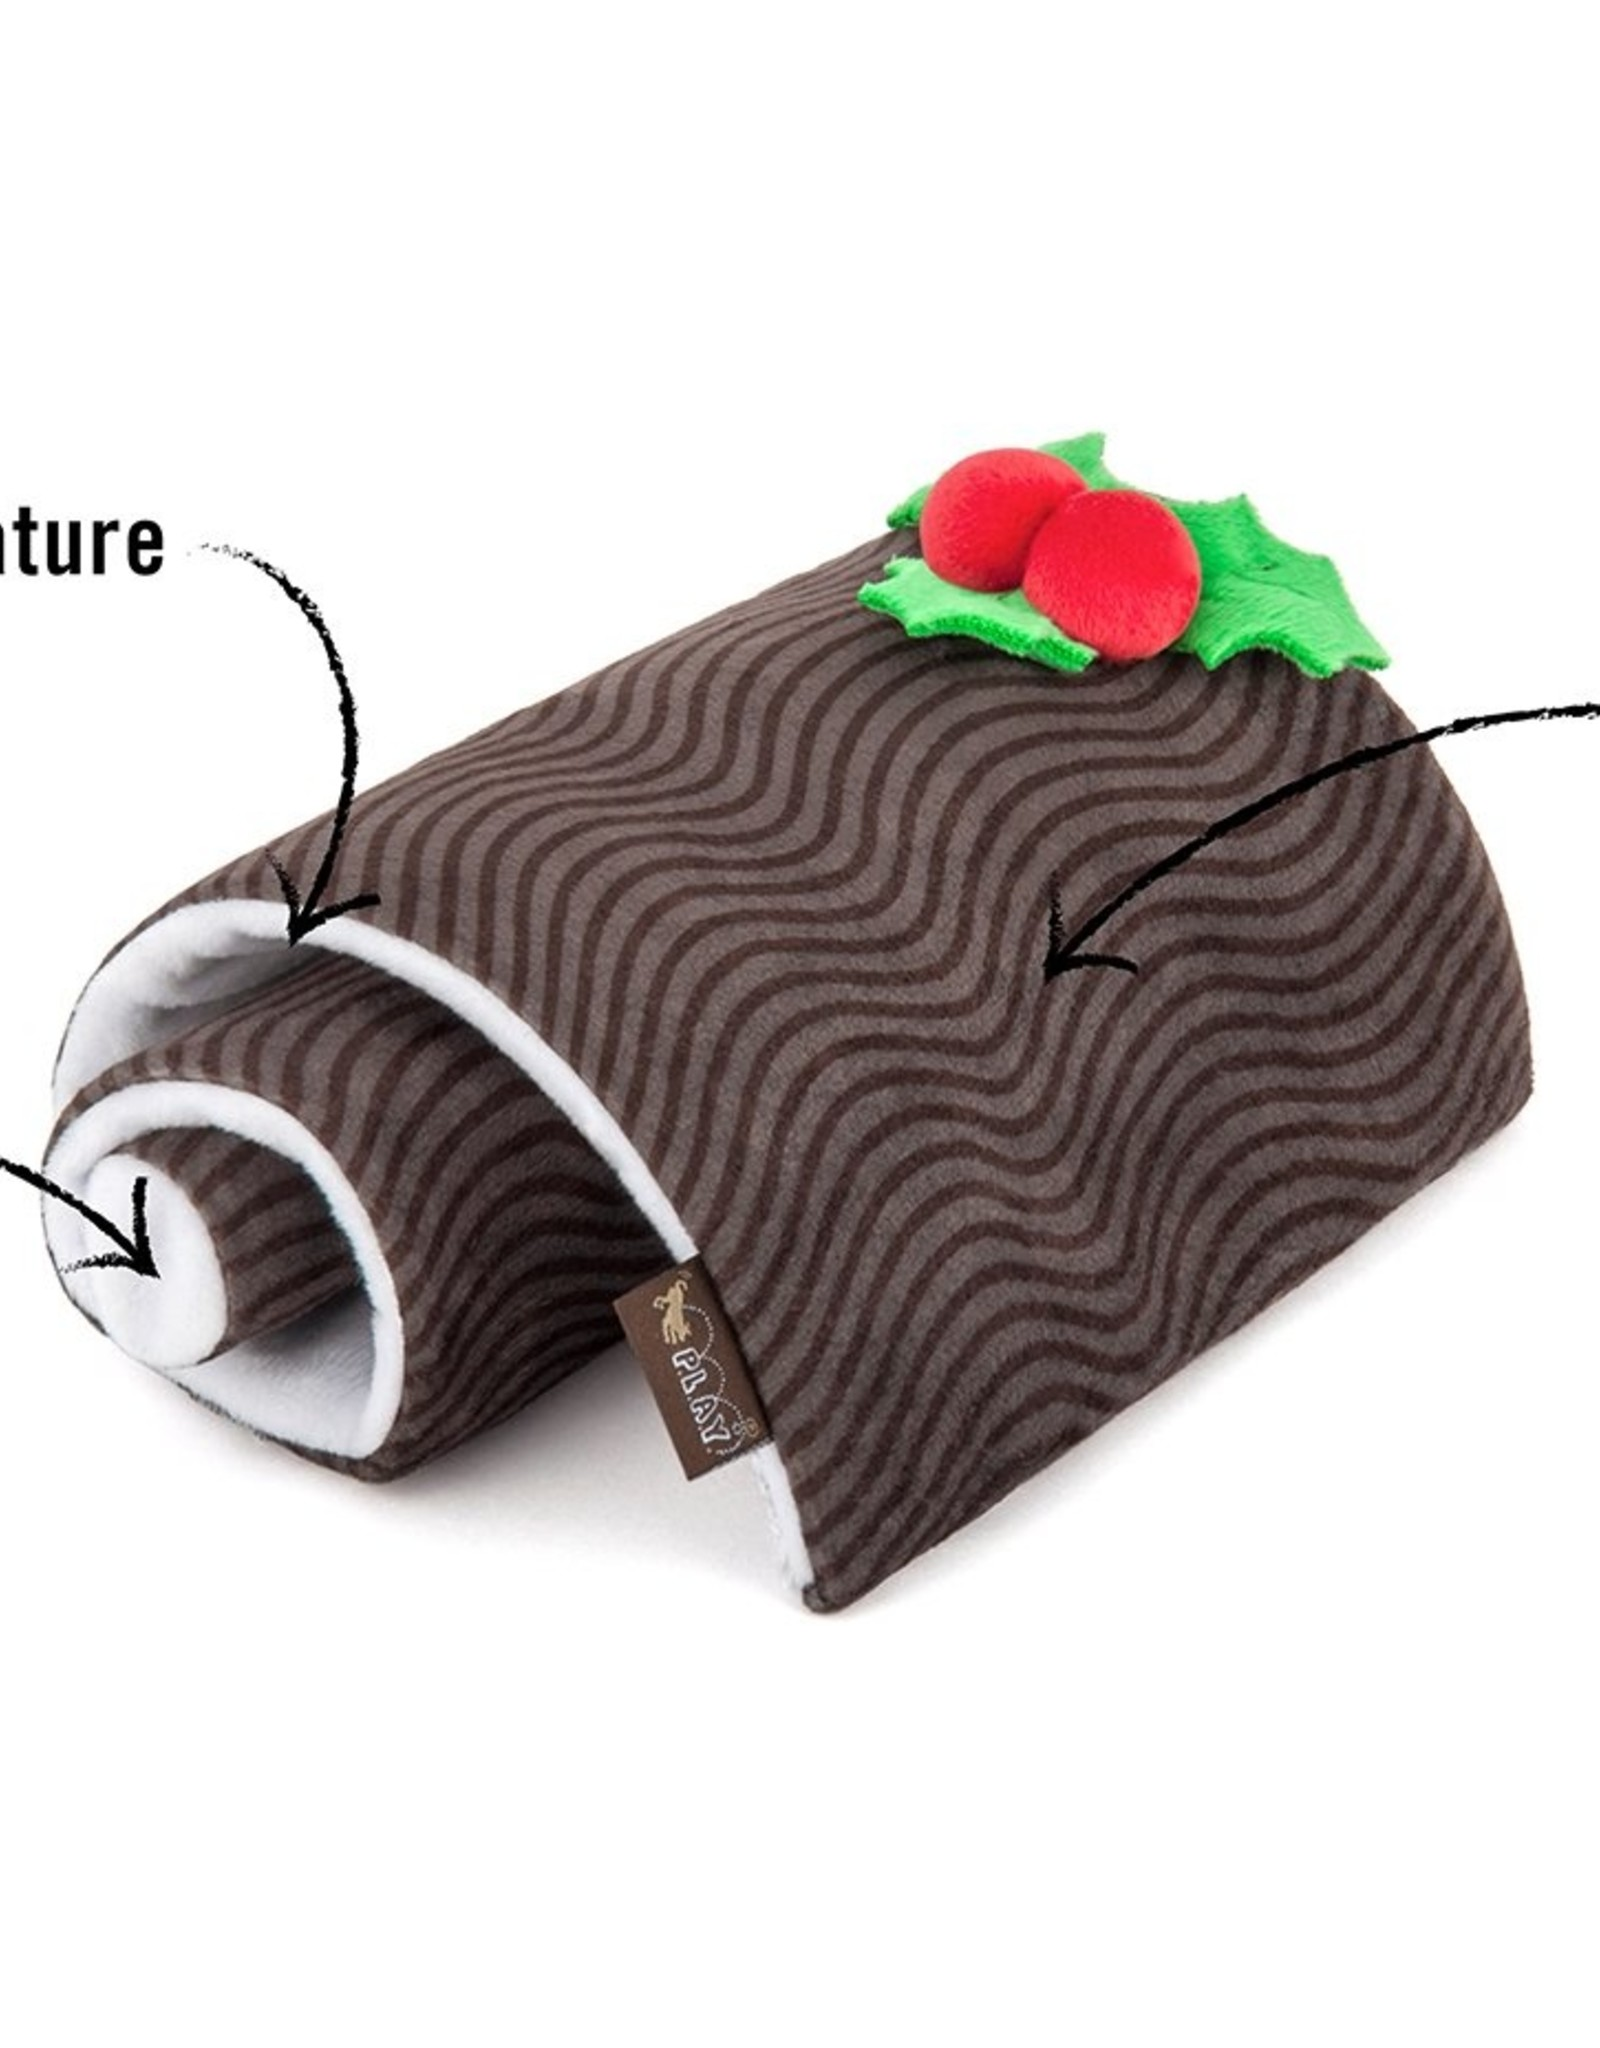 Tall Tails P.L.A.Y. Plush Holiday Yule Log